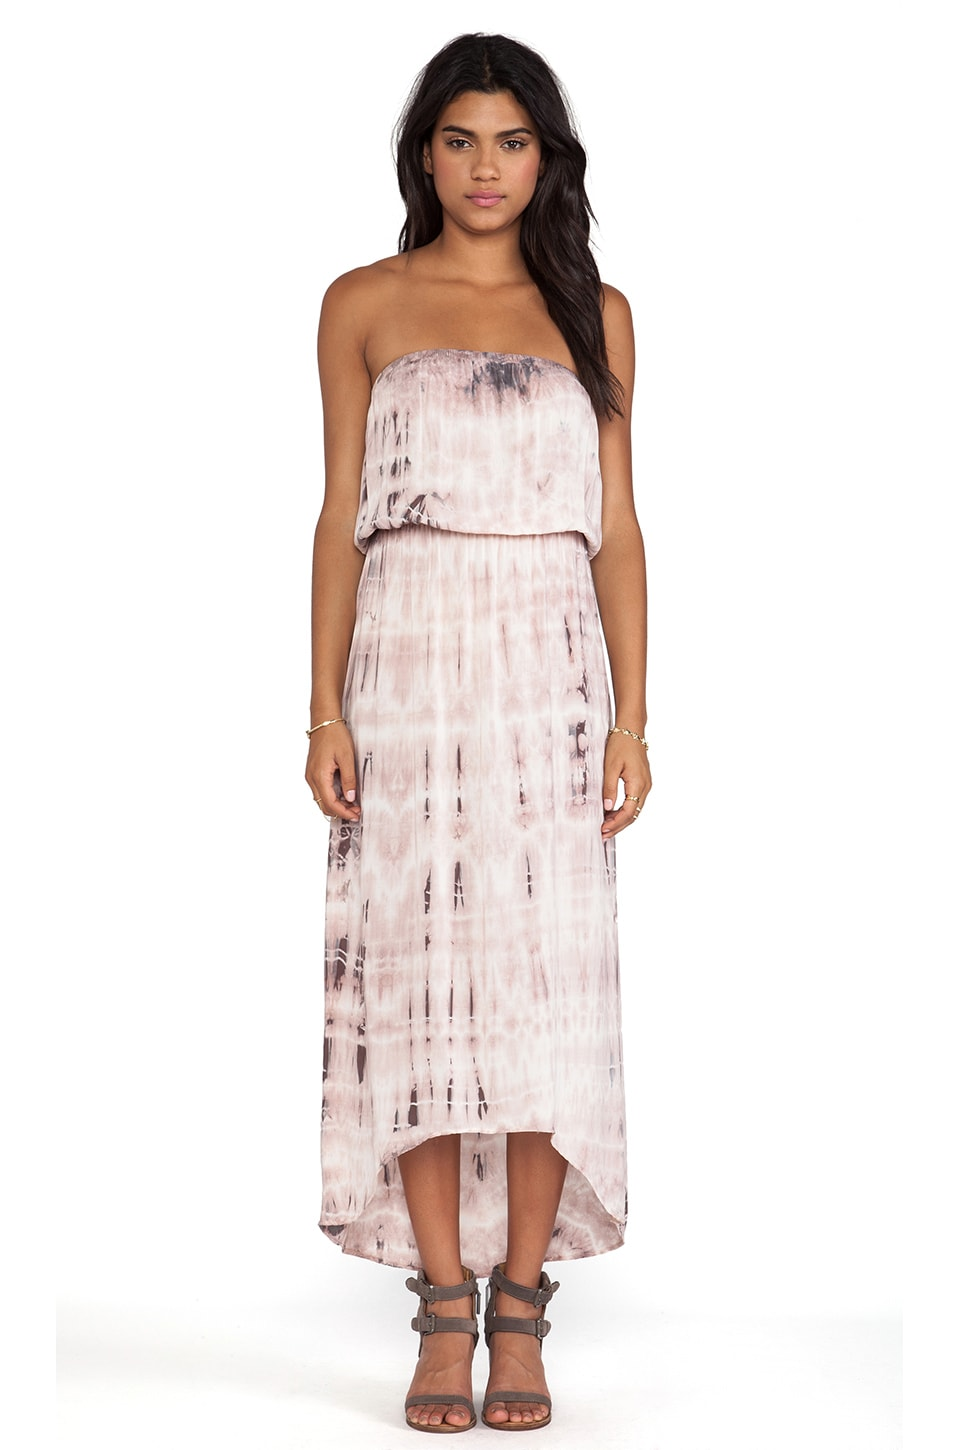 Velvet by Graham & Spencer Tippie Tie Dye Rayon Voile Dress in Grecian